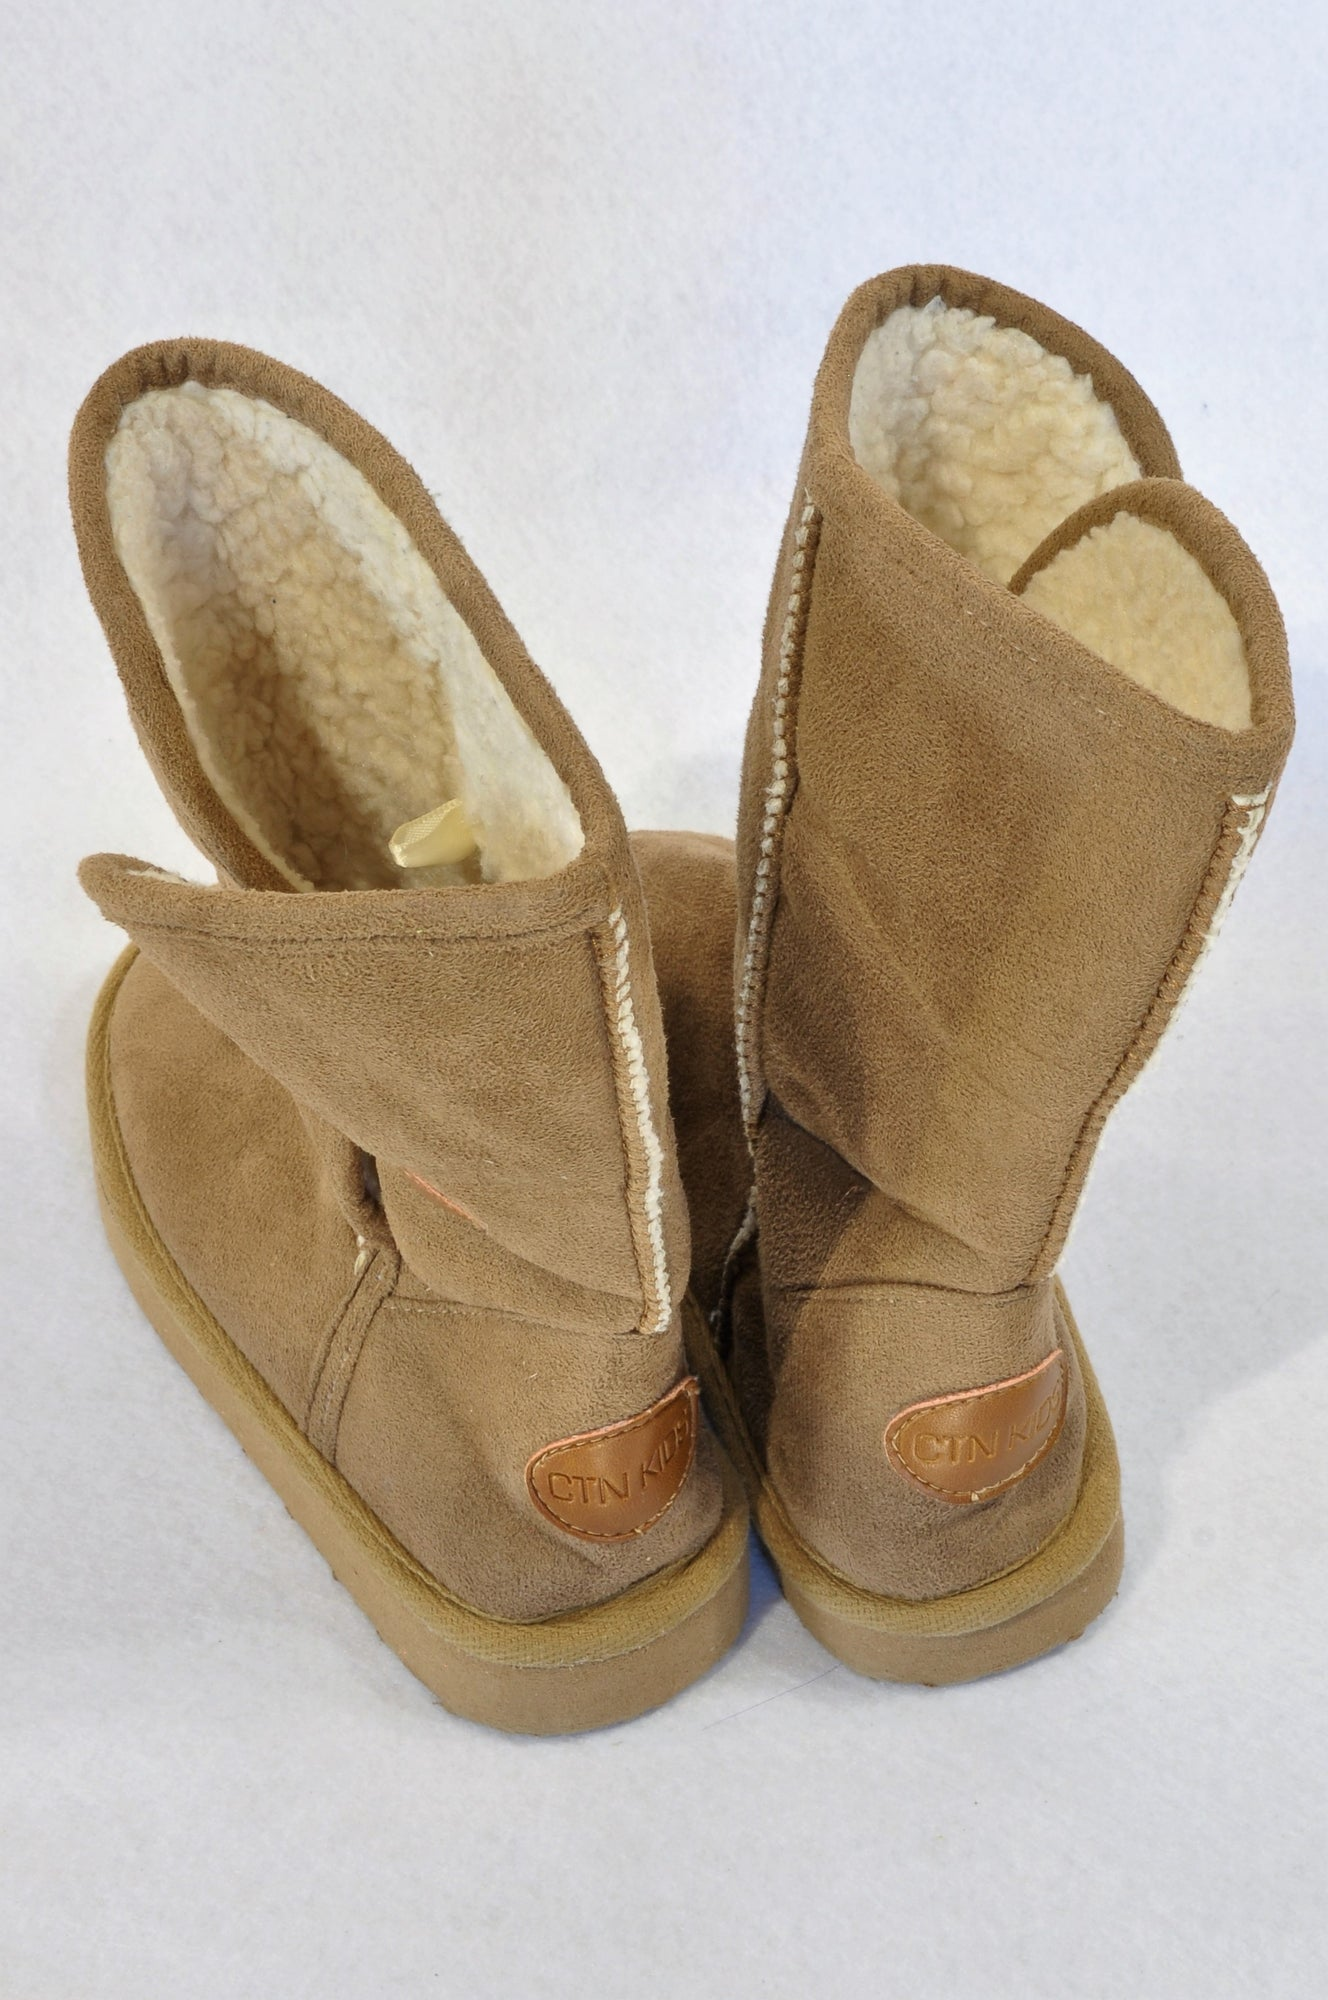 New Cotton On Size 11 Beige Button Fleece Lined Ugg Boots Girls 5-6 years